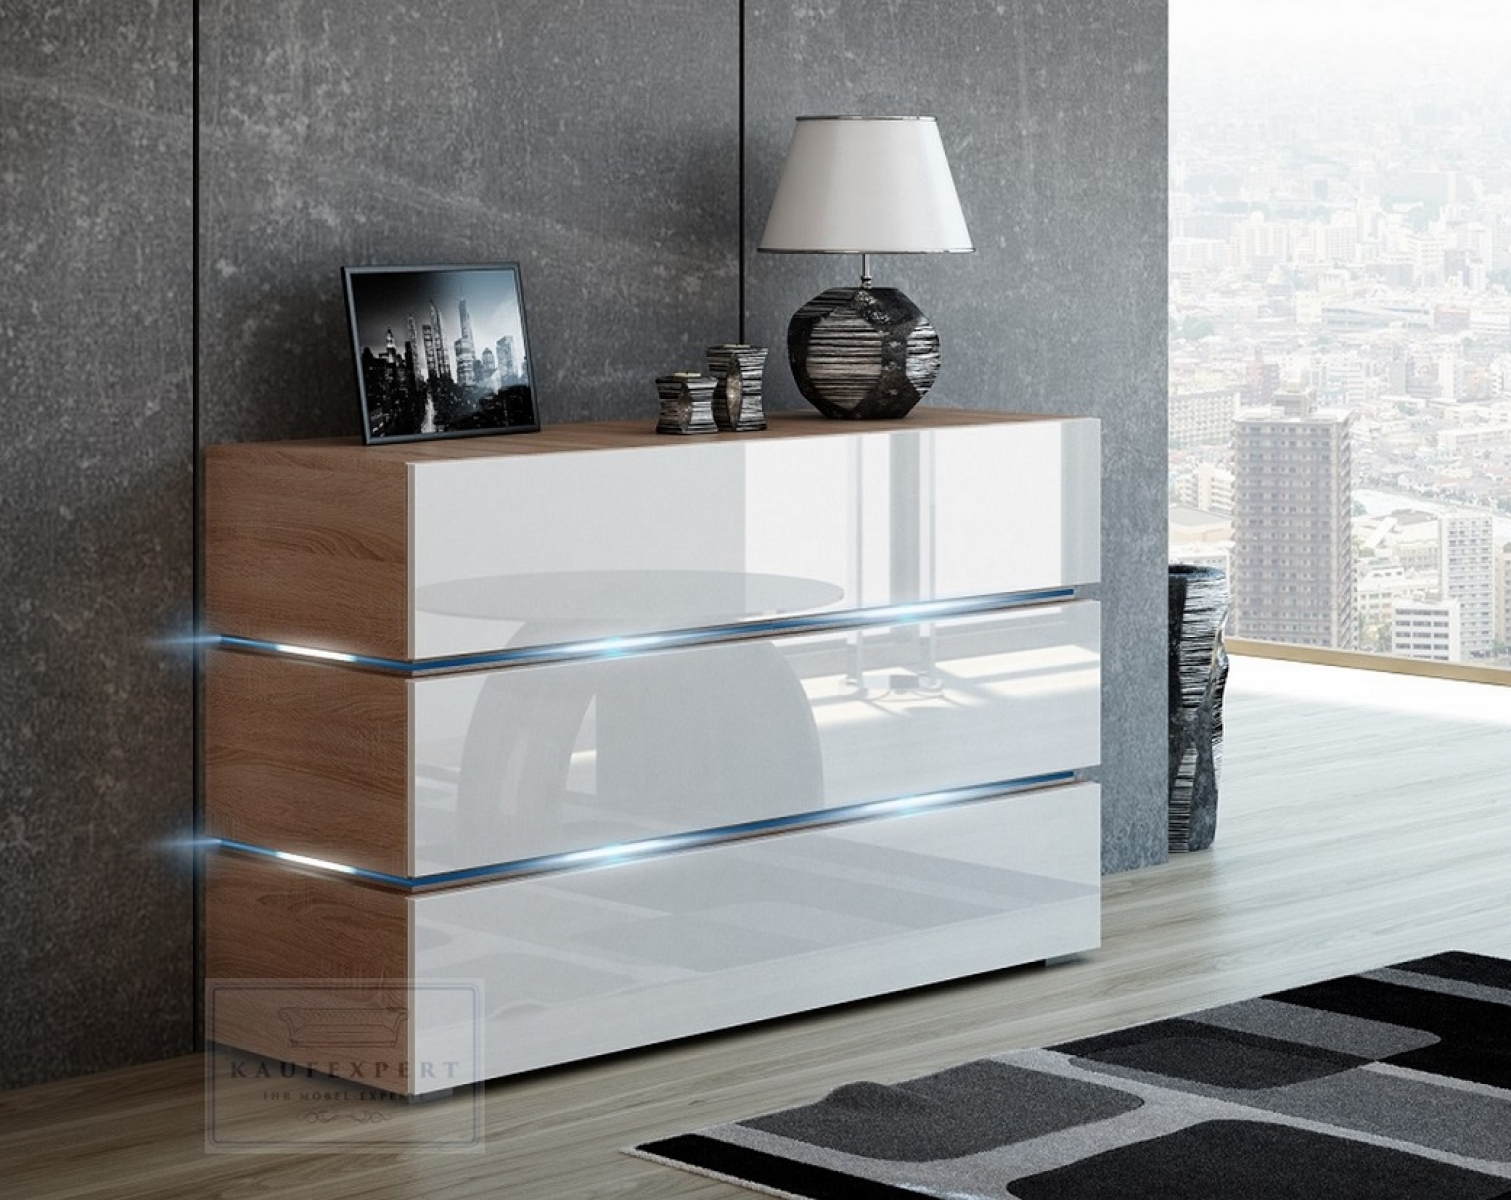 kaufexpert kommode shine sideboard 120 cm wei hochglanz sonoma eiche led beleuchtung modern. Black Bedroom Furniture Sets. Home Design Ideas